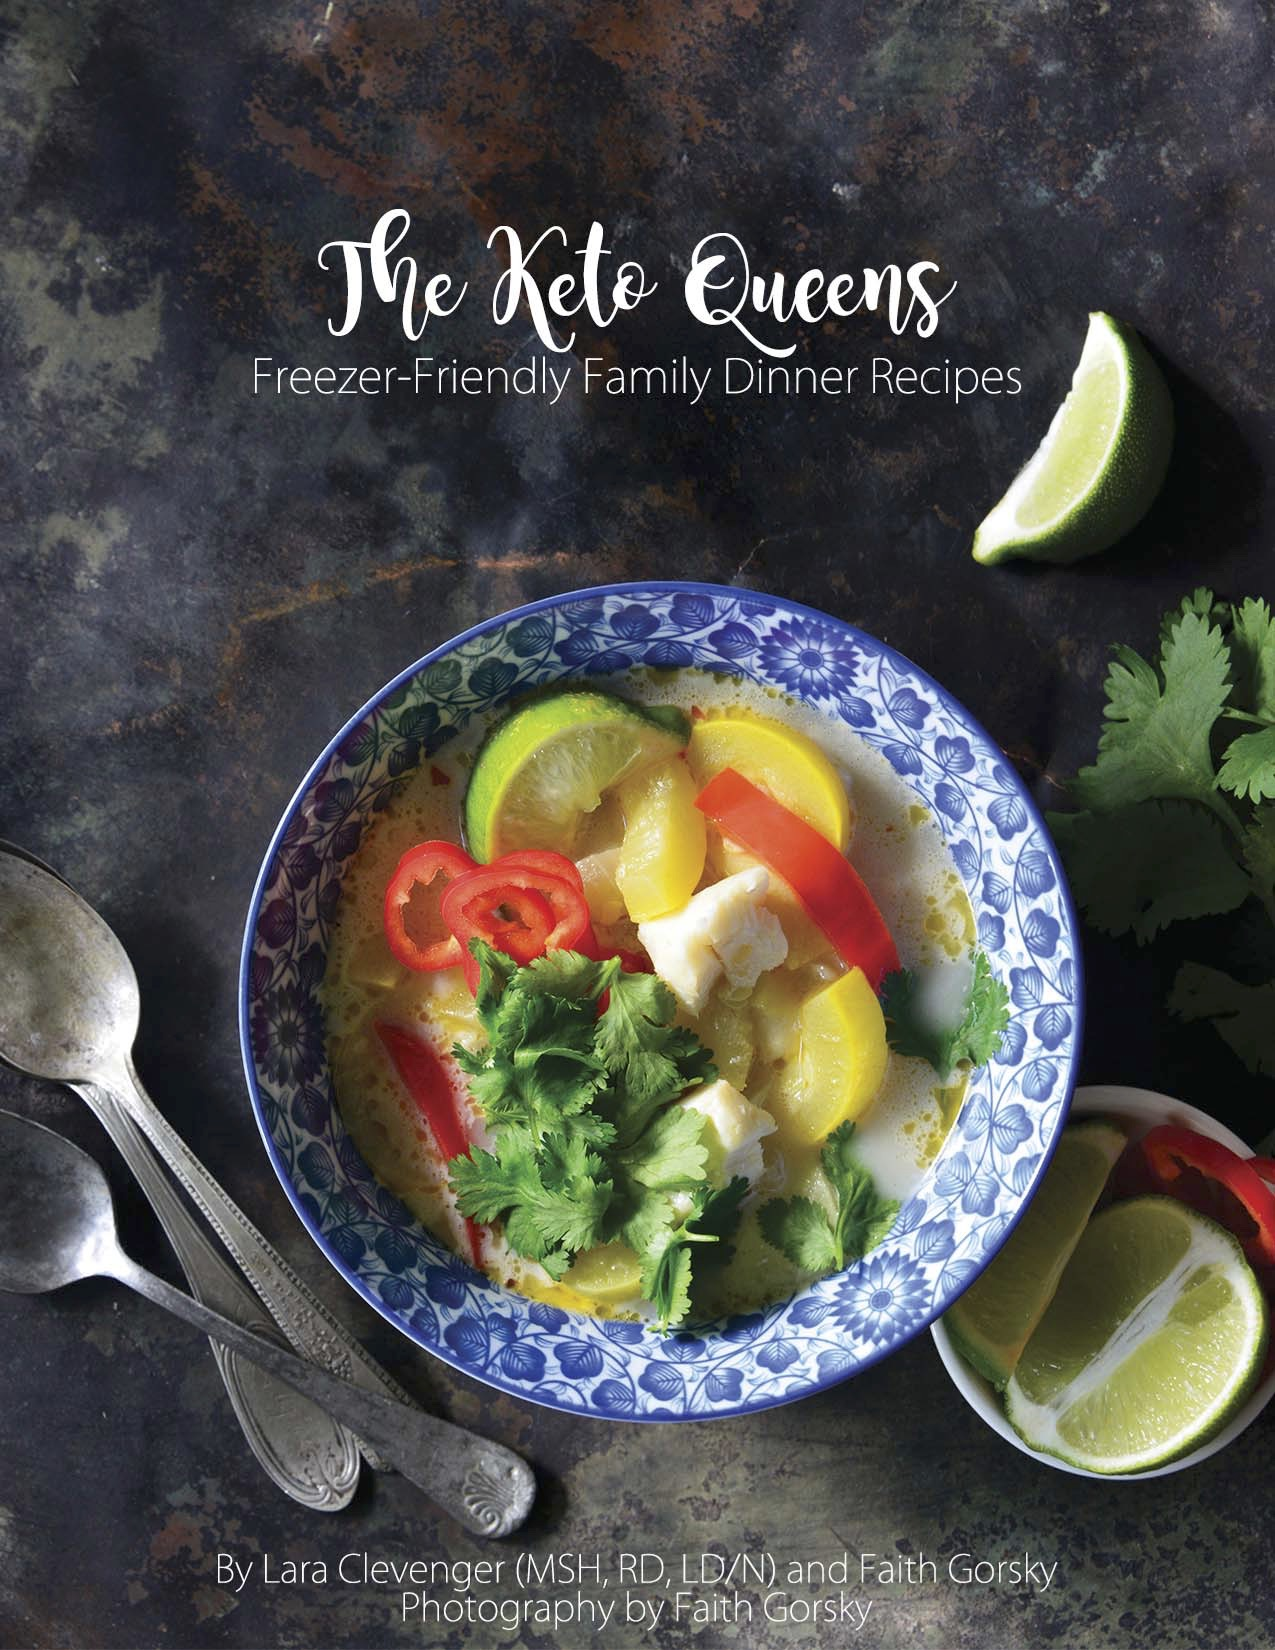 Take the stress out of dinner with this ebook packed full of easy keto dinner recipes that the entire family will LOVE! This is the ULTIMATE Keto Freezer Friendly Family Dinner ebook. This keto ebook includes easy to make recipes that can be prepped ahead of time and frozen. So after a long day of work you can take a meal out of the freezer and have a tasty keto meal without the stress.